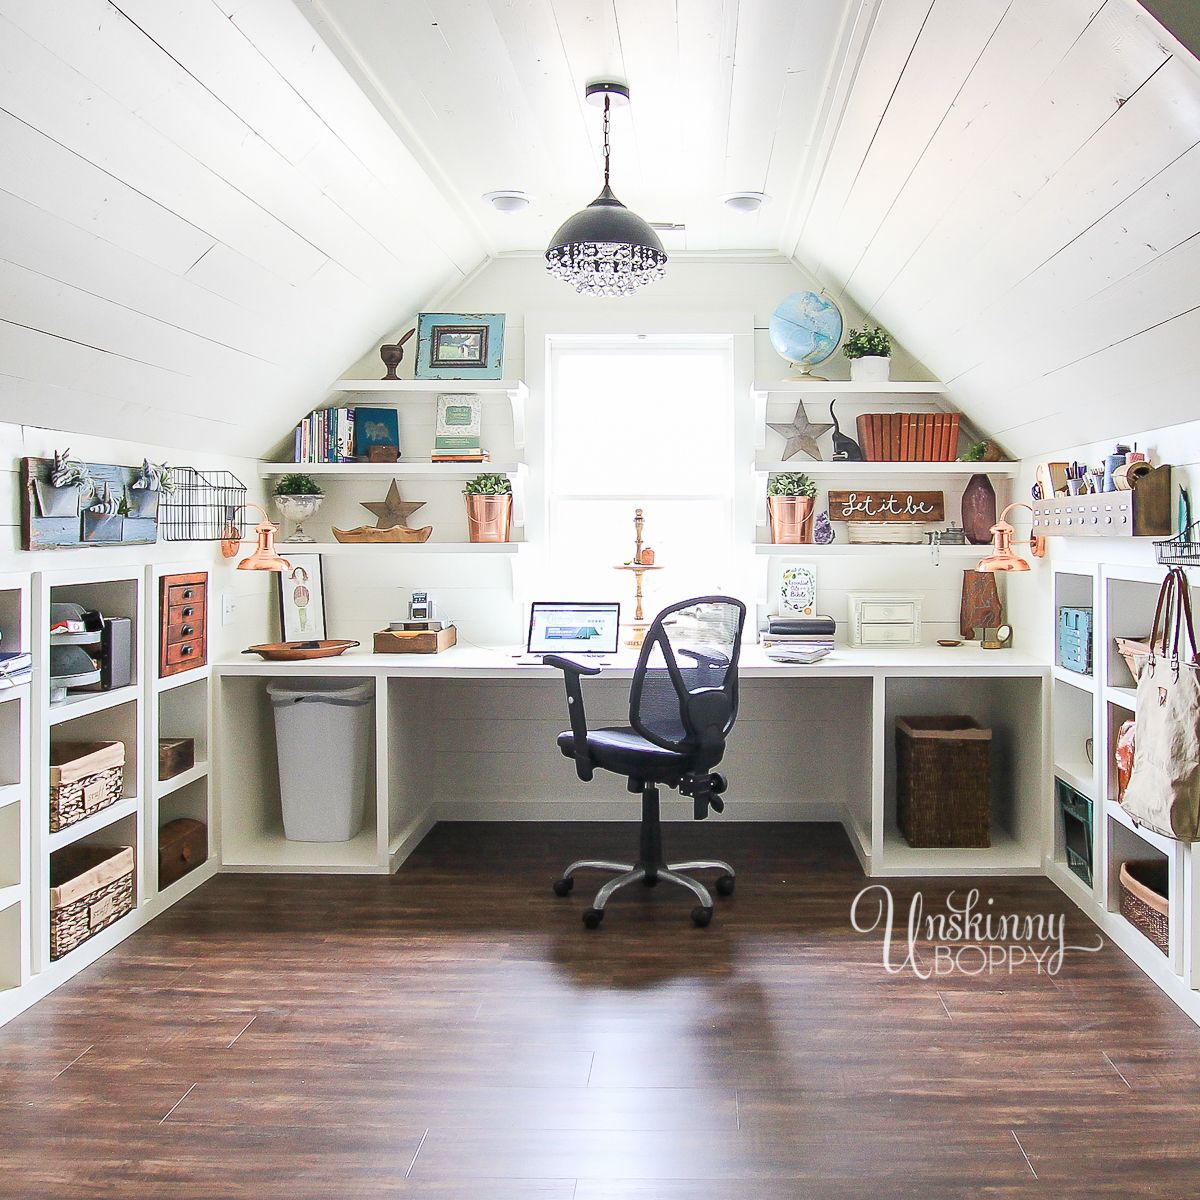 35 Home Storage Ideas Room By Room: Amazing Office/Craft Room Organization In The Attic